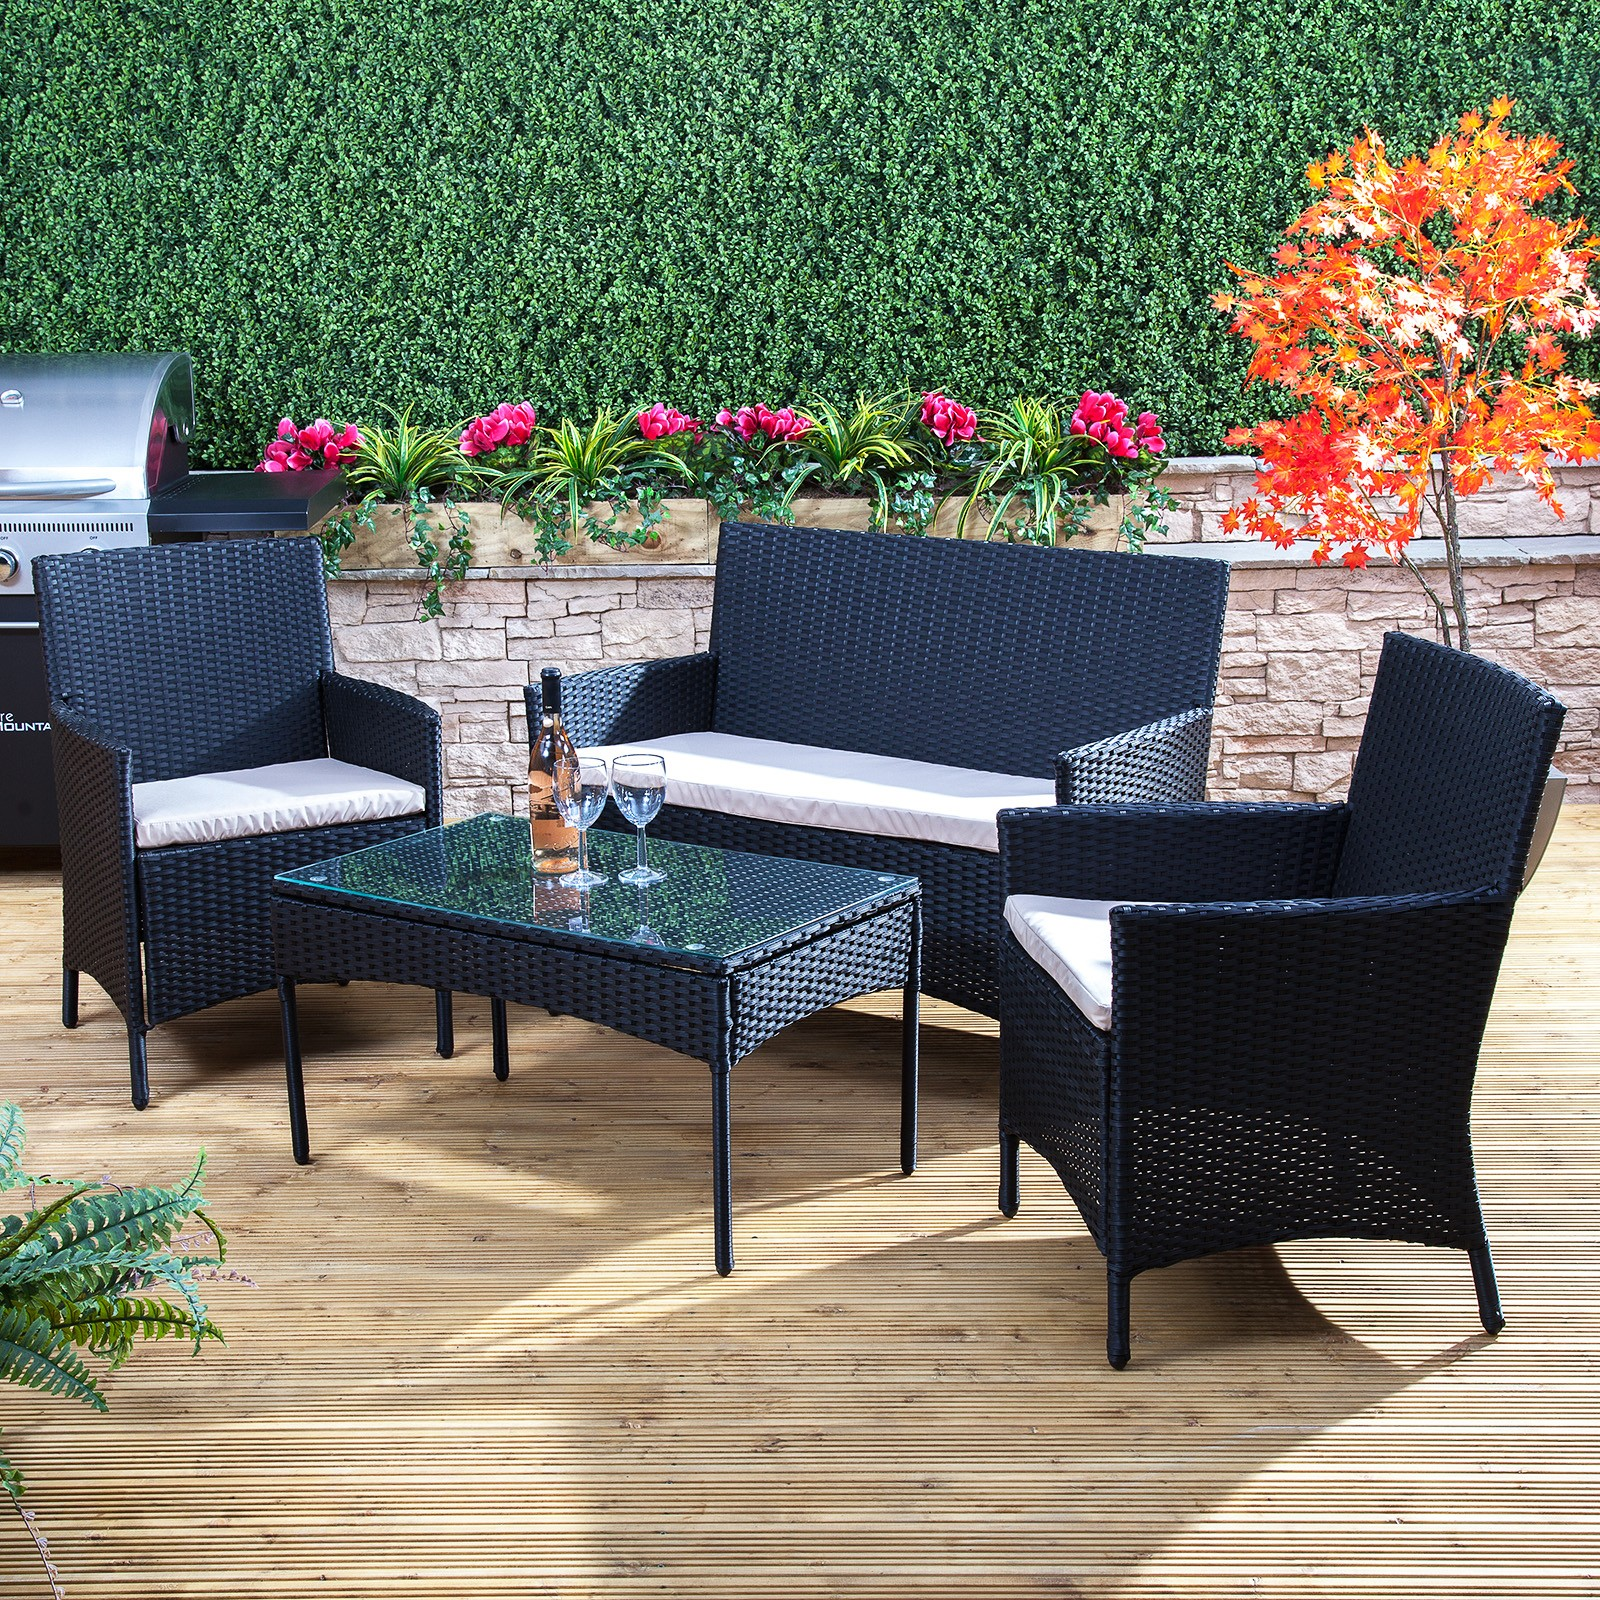 bordeaux poly-rattan garden furniture set ZNREFJA